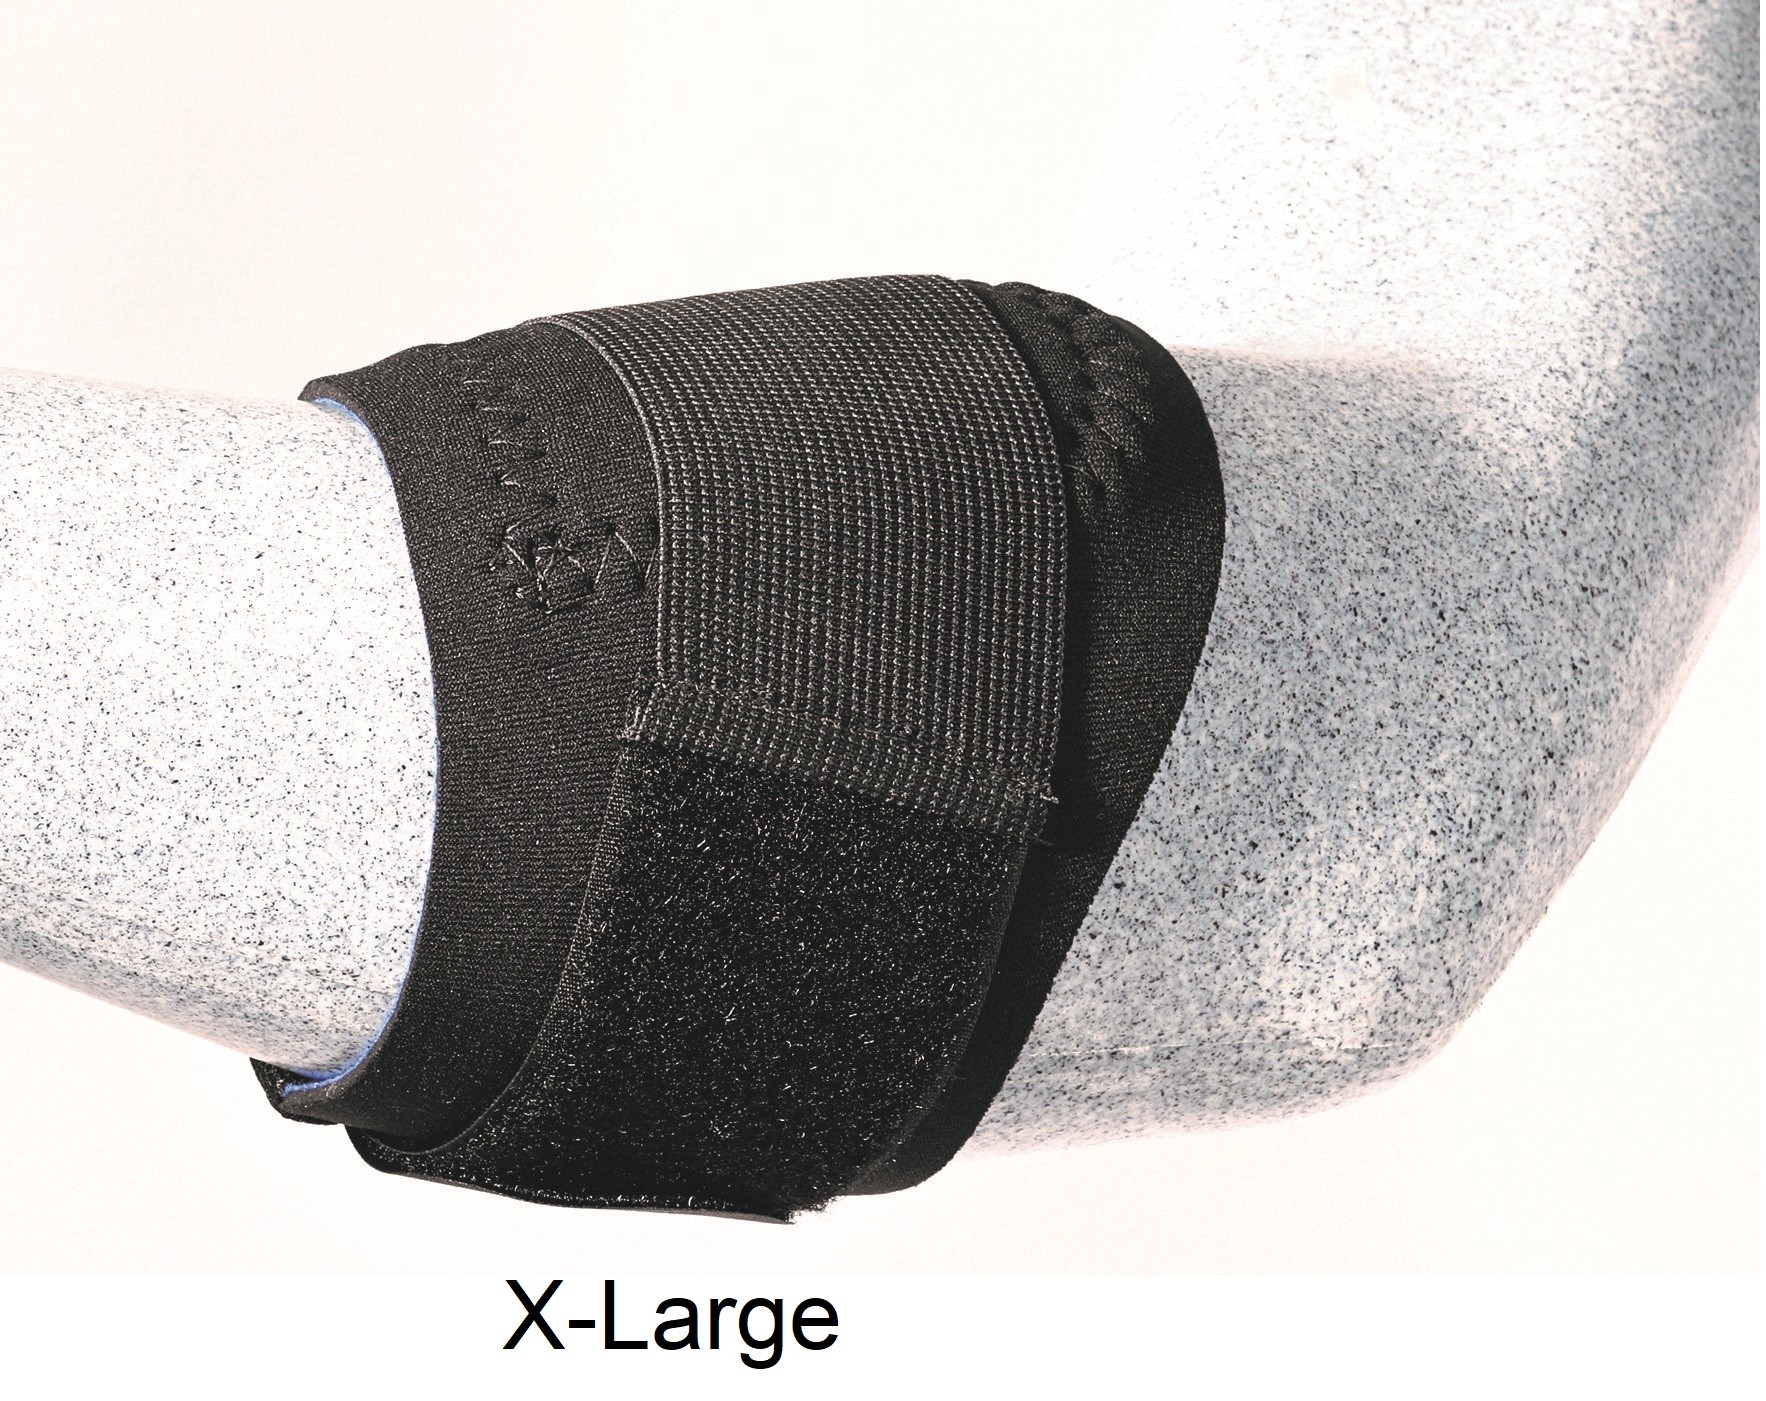 Neoprene Tennis Elbow Support with Felt Pad - X-Large - 12